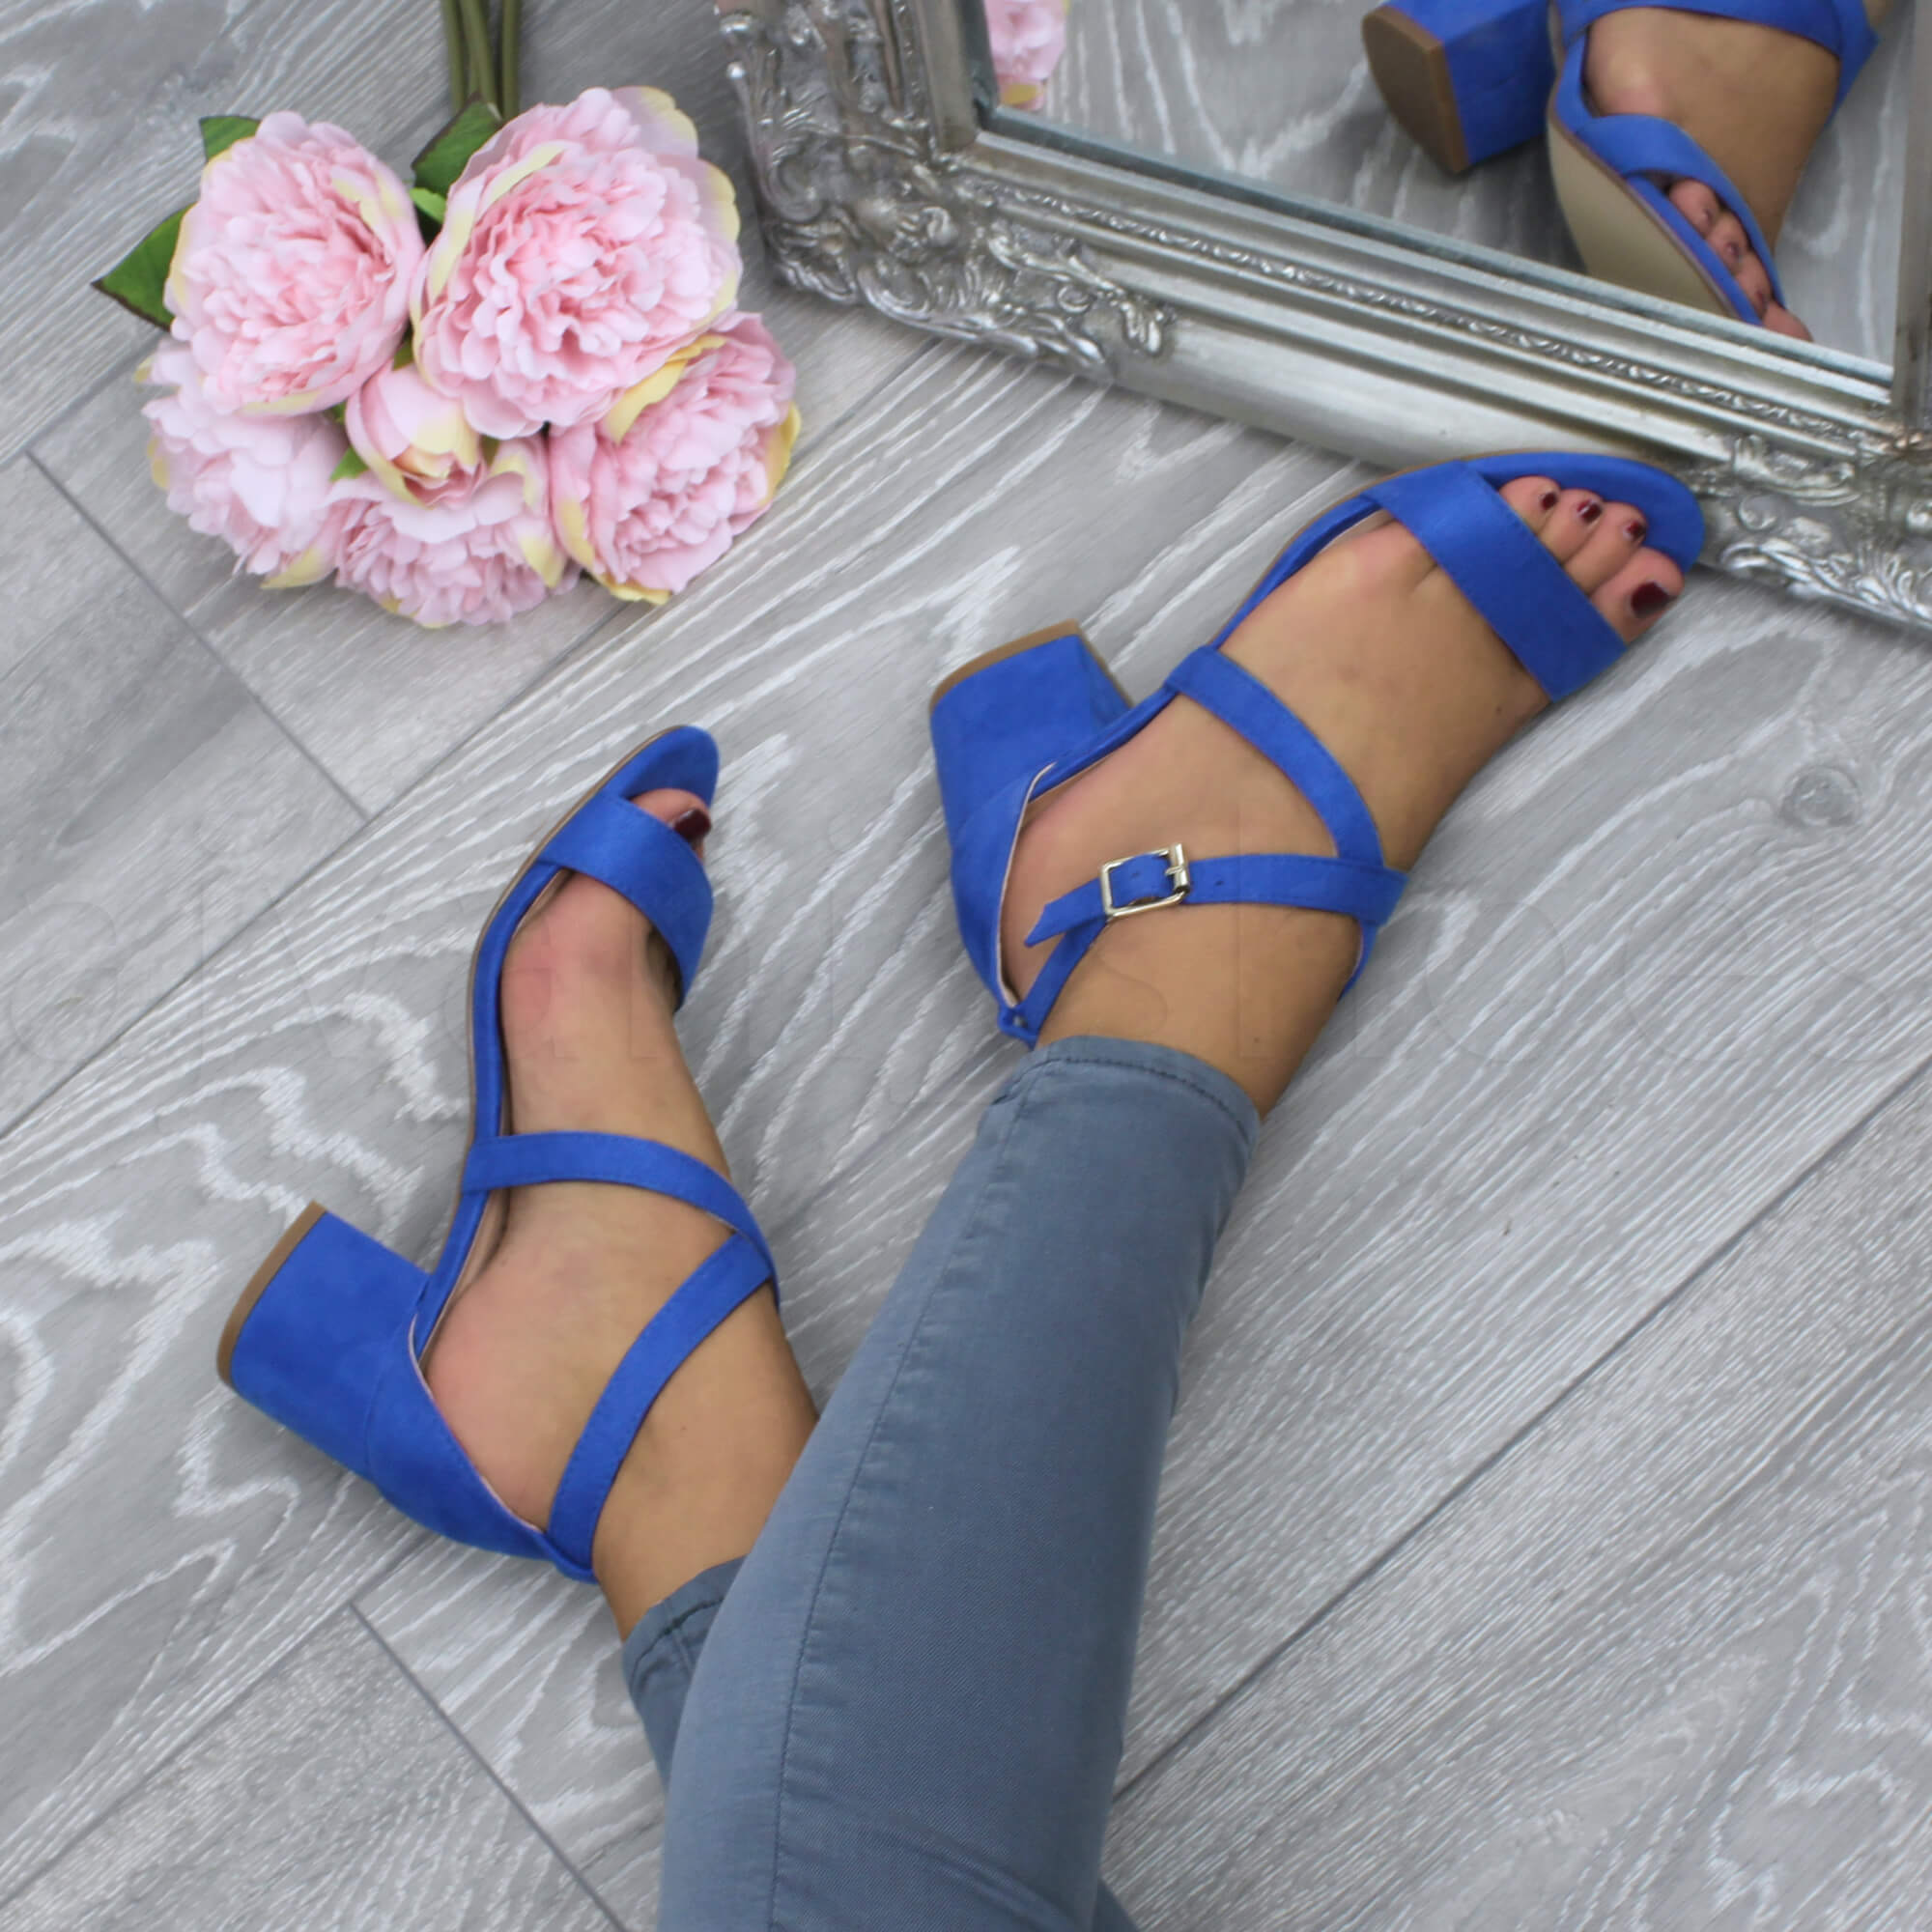 WOMENS-LADIES-MID-LOW-BLOCK-HEEL-CROSS-STRAPS-PARTY-STRAPPY-SANDALS-SHOES-SIZE thumbnail 16